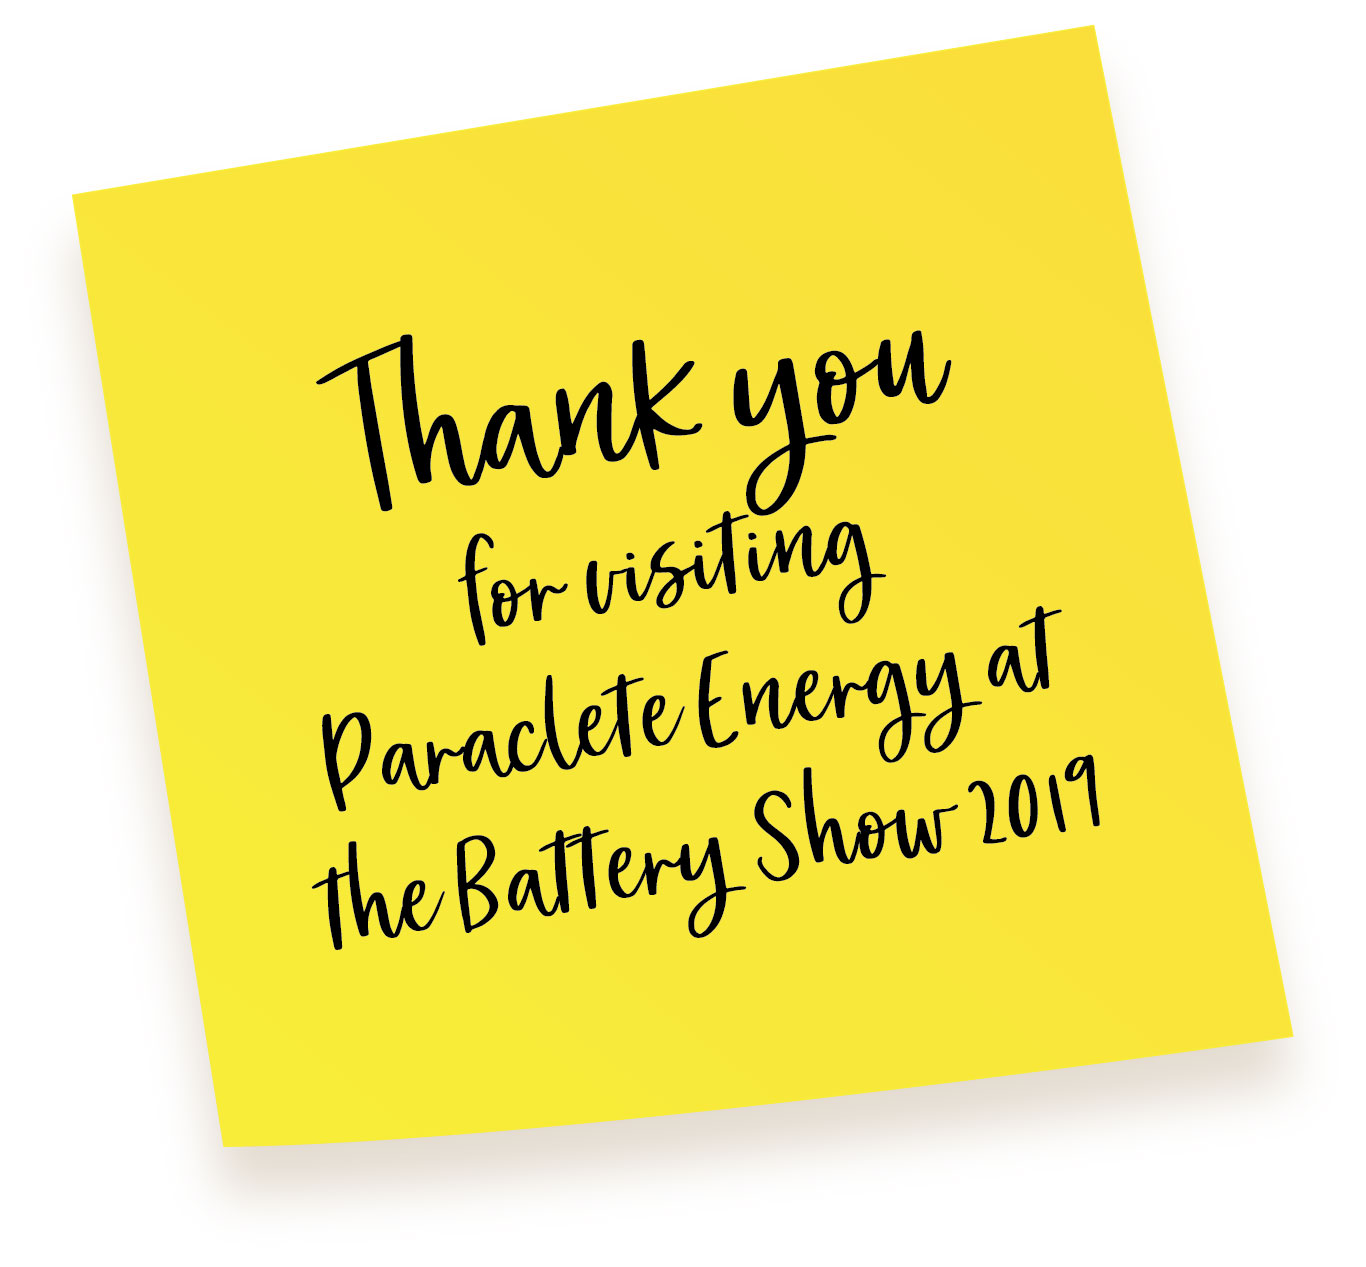 The Battery Show Thank You